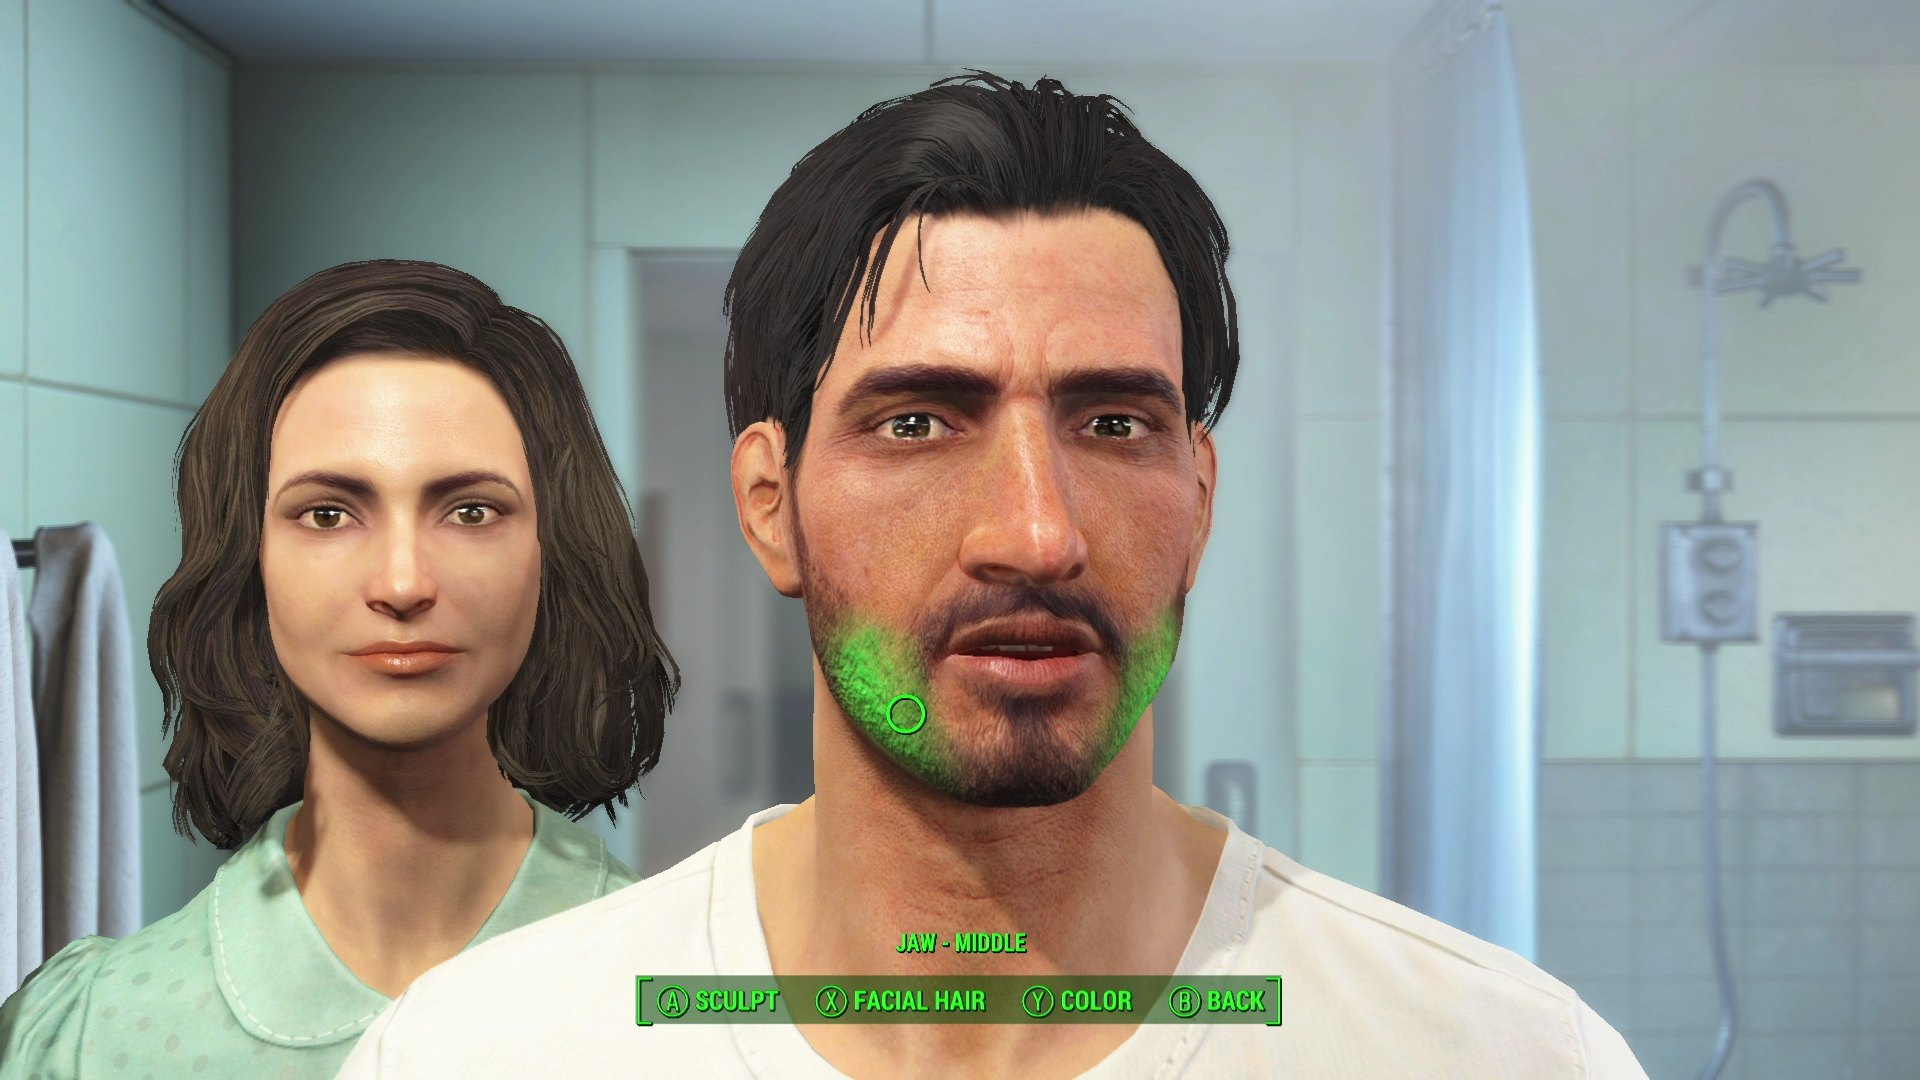 Fallout 4 Graphics Will Enhance Immersion Says Todd Howard